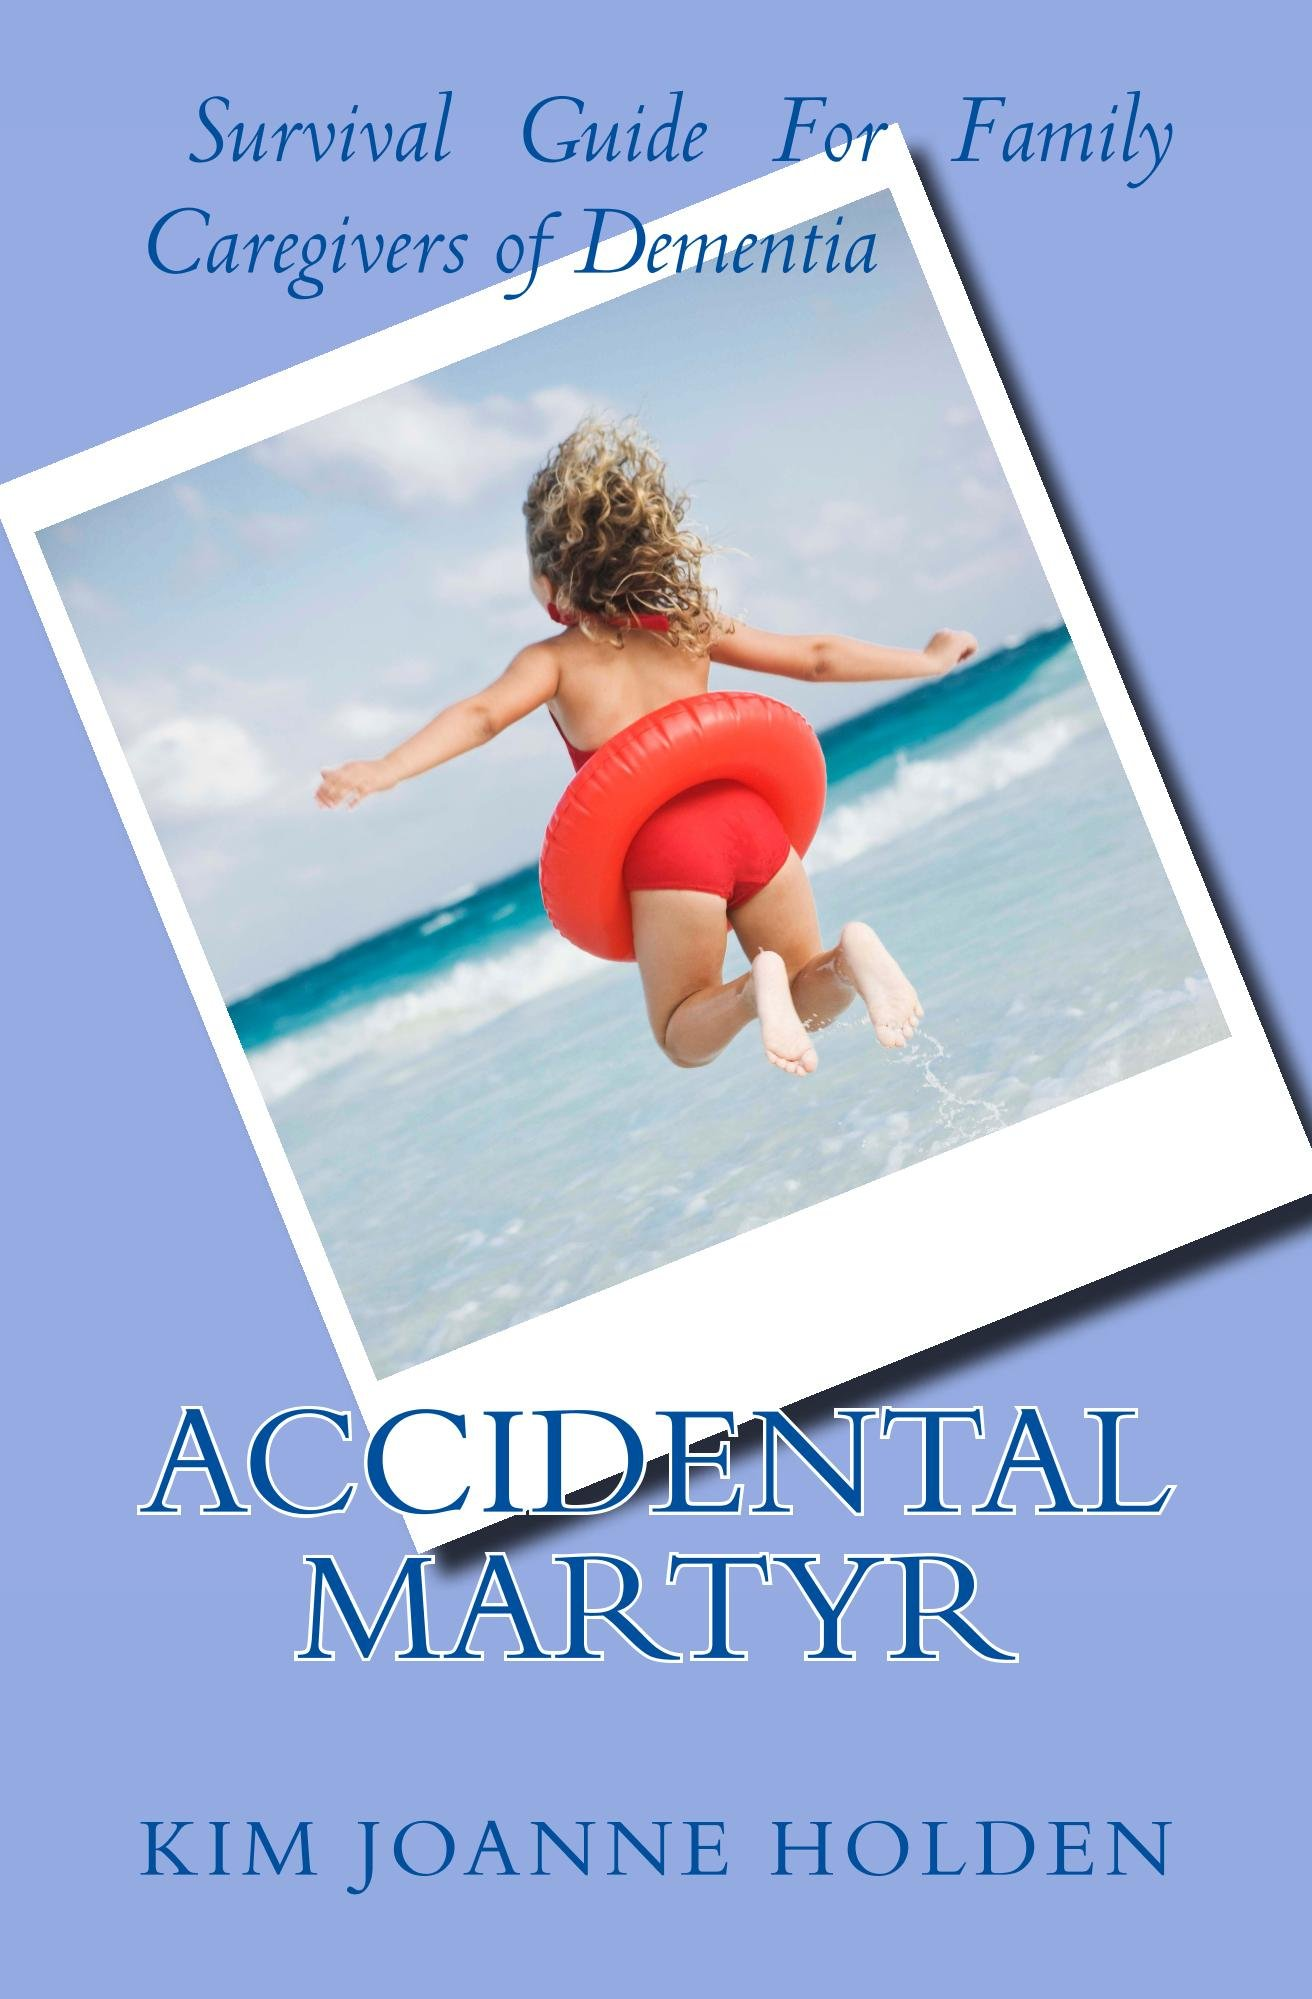 Accidental Martyr  Survival Guide For Family Caregivers Of Dementia  English Edition